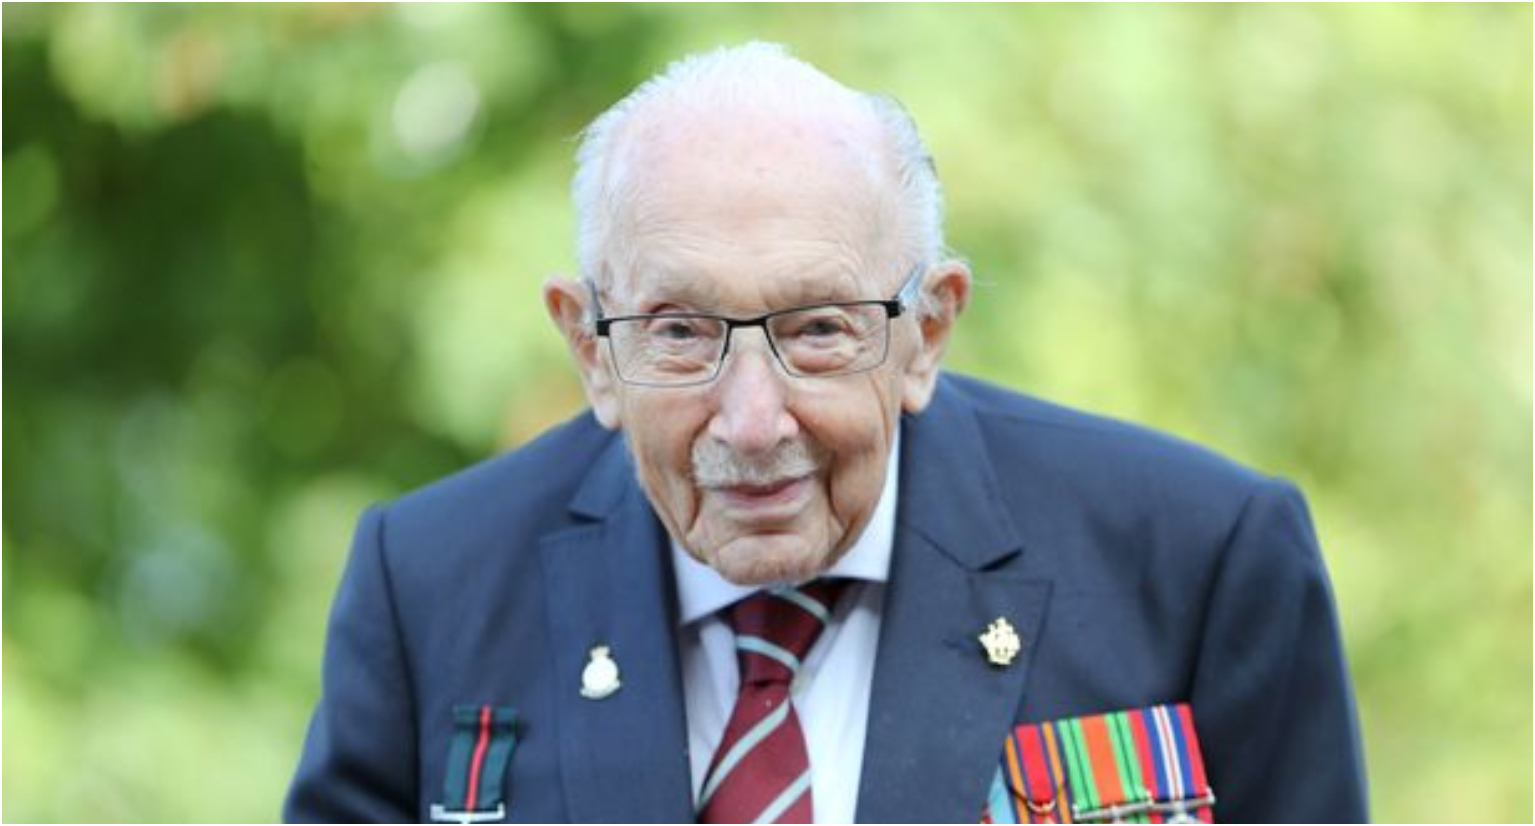 Captain Sir Tom Moore has passed away at the age of 100 after testing positive for Covid-19